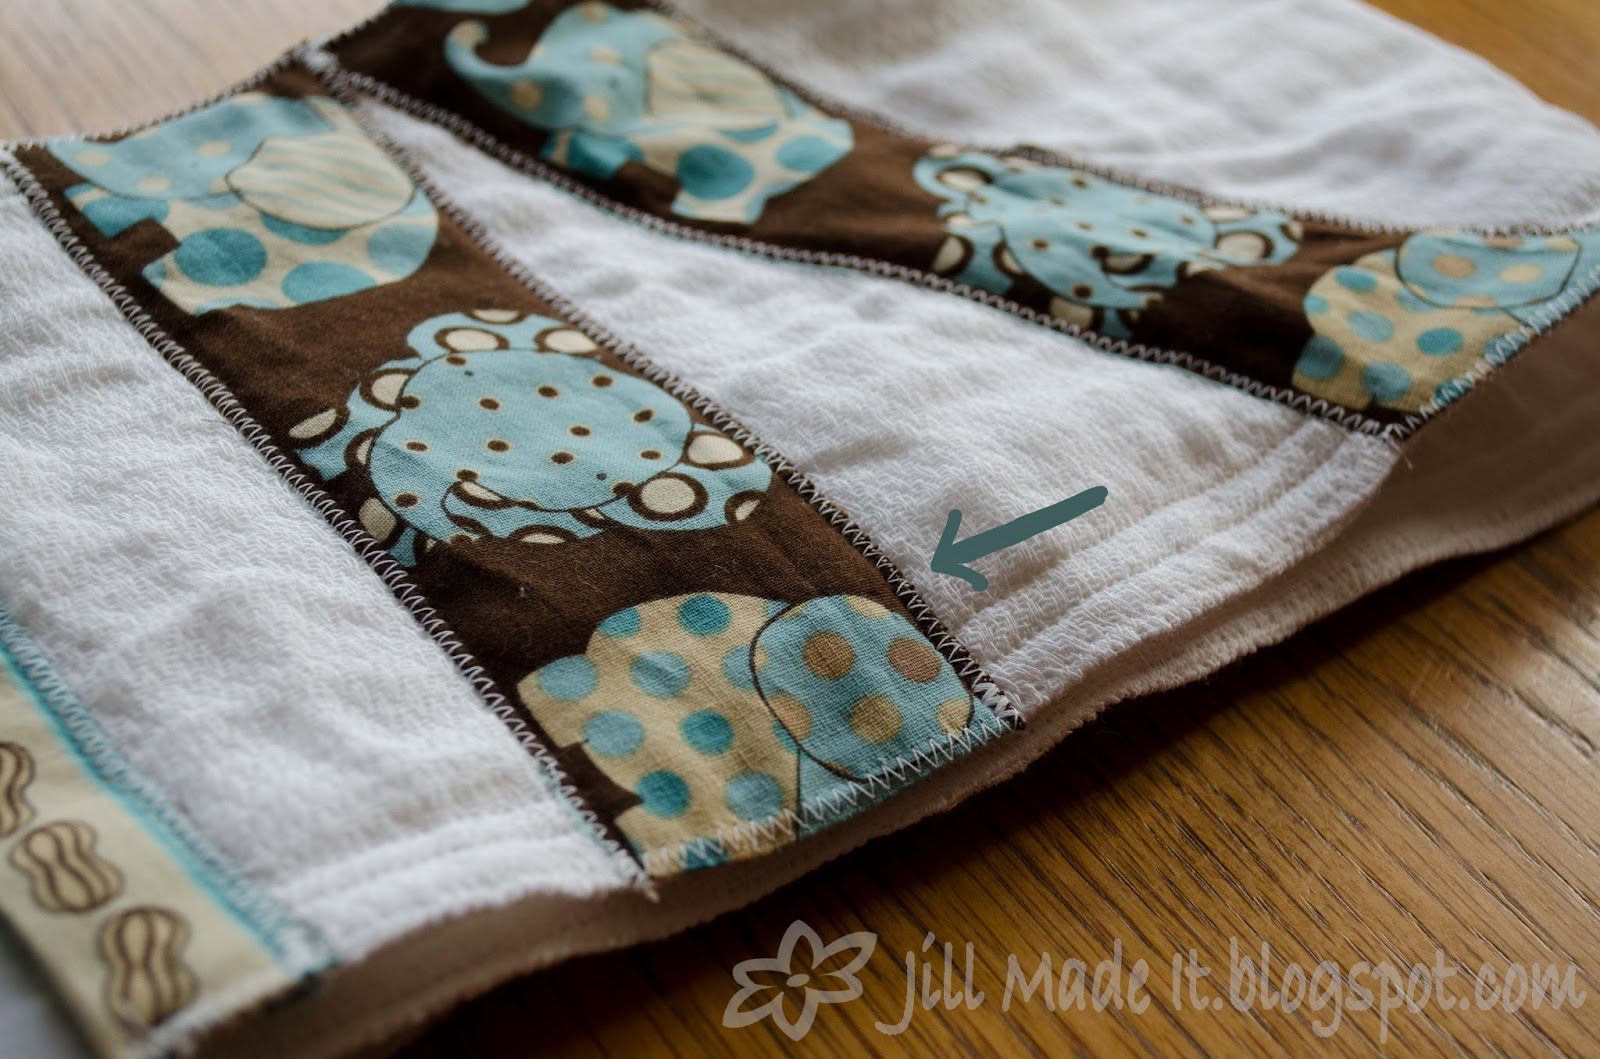 Jill made it diy burp cloths i just zig zag appliqud these cute little elephants onto the burp cloths like in this tutorial only simpler since its just a rectangle baditri Image collections